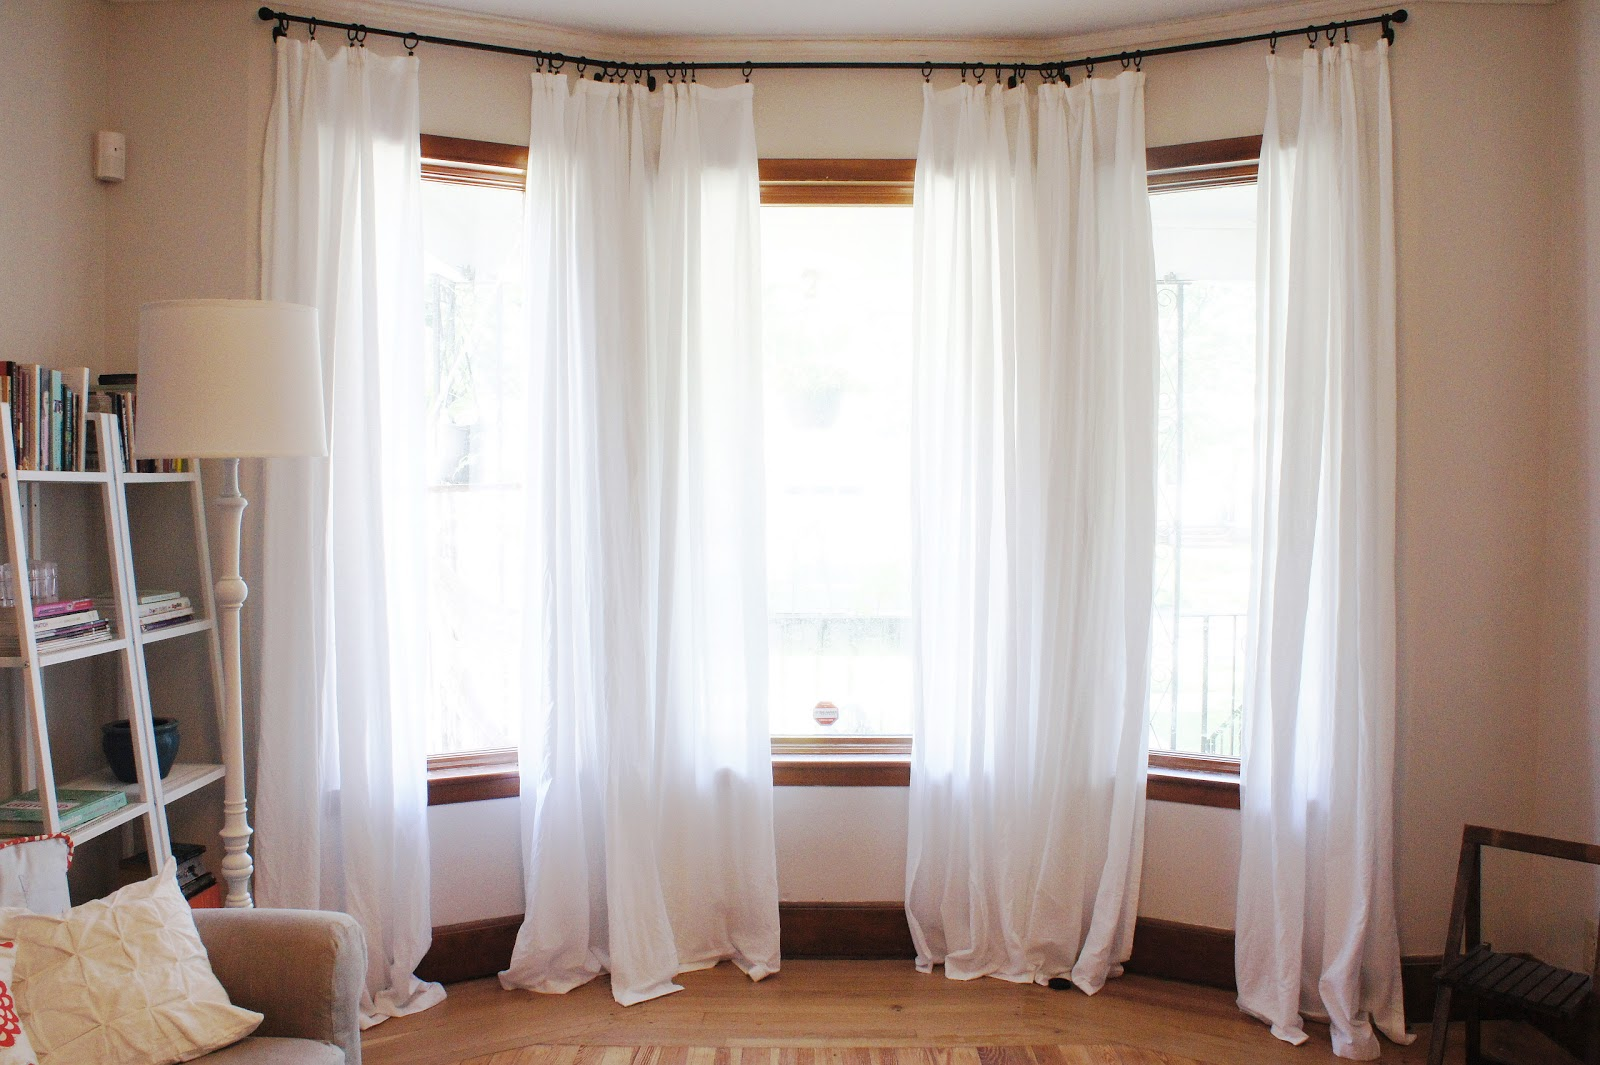 Lilikoi Vanilla Diy Pinch Pleat Curtains